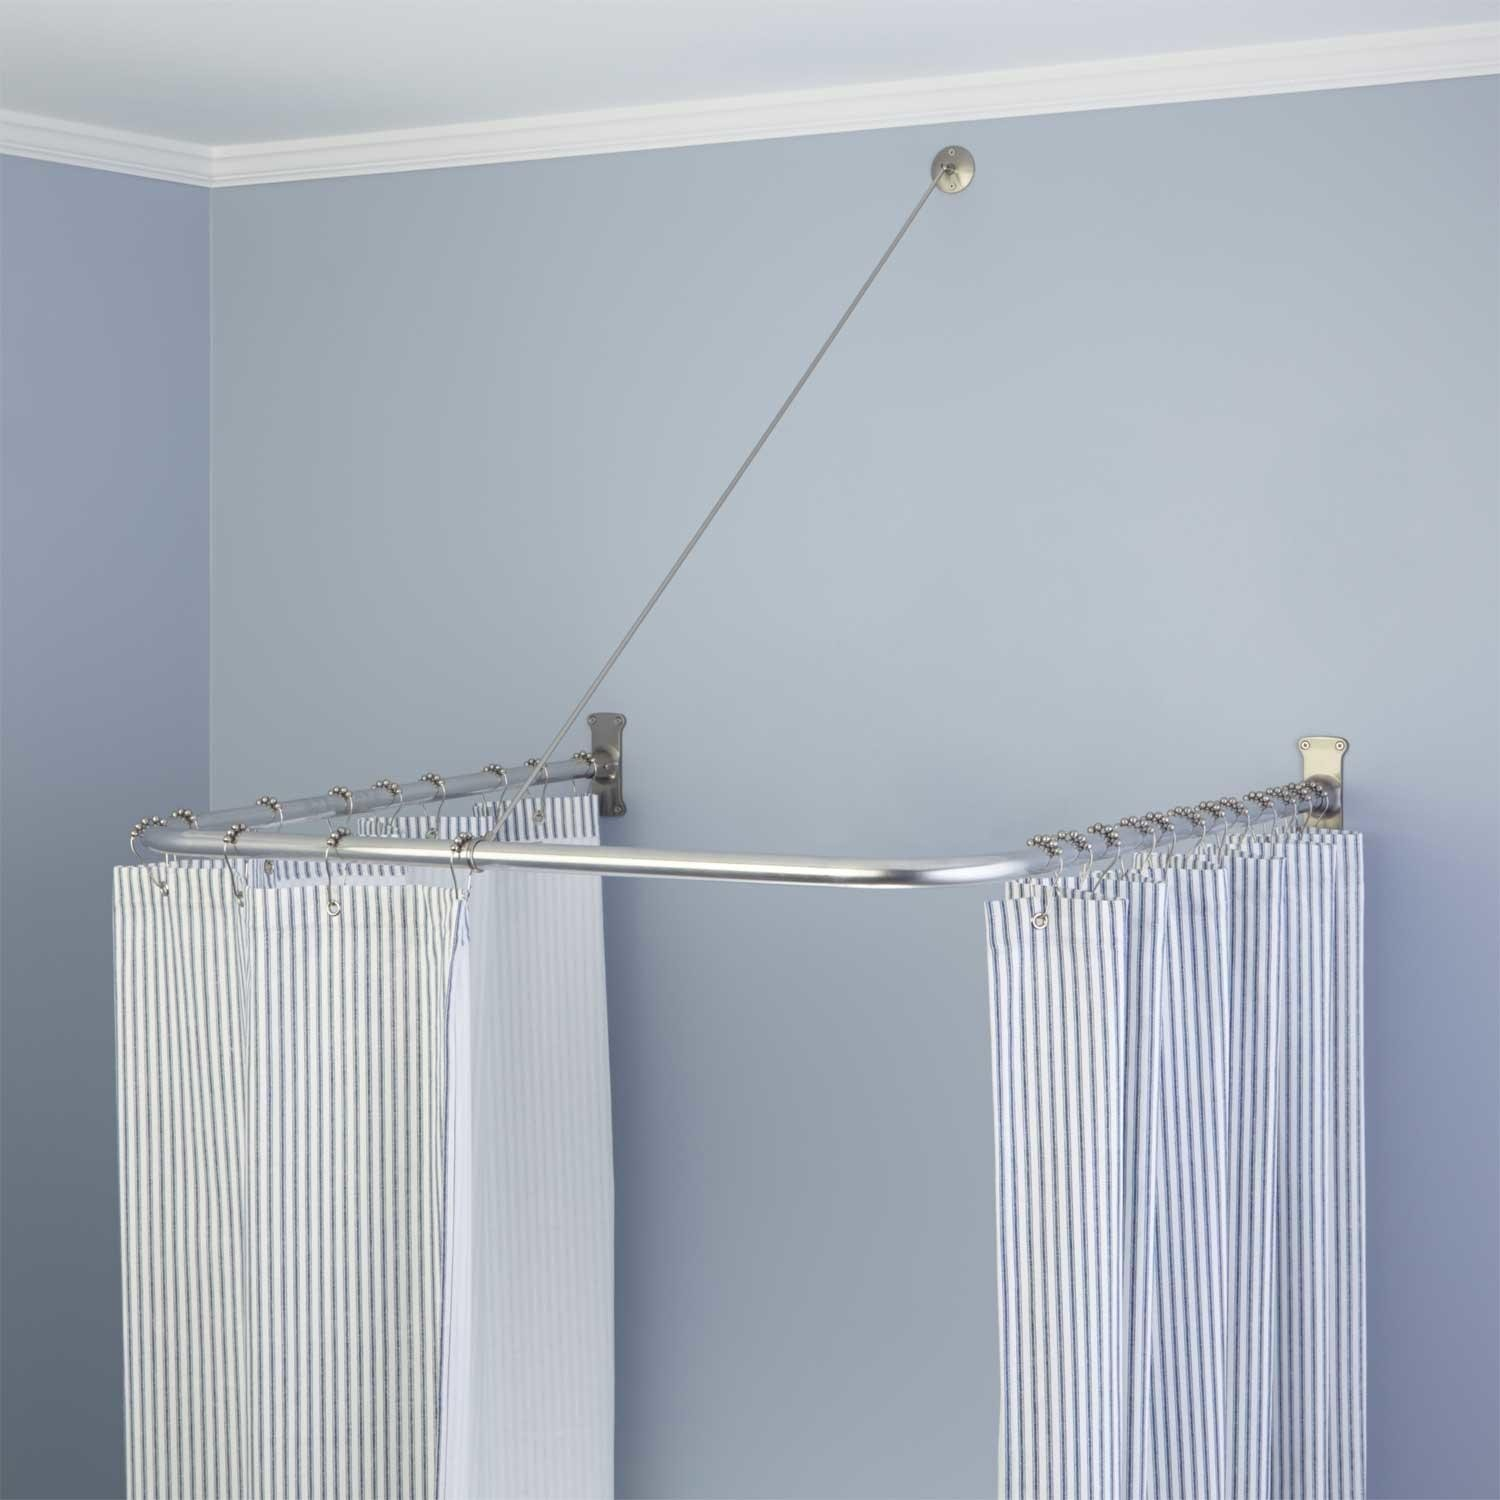 mediterranean traditional curtain rods bathroom spaces mounted with shower ceilings rod long ceiling